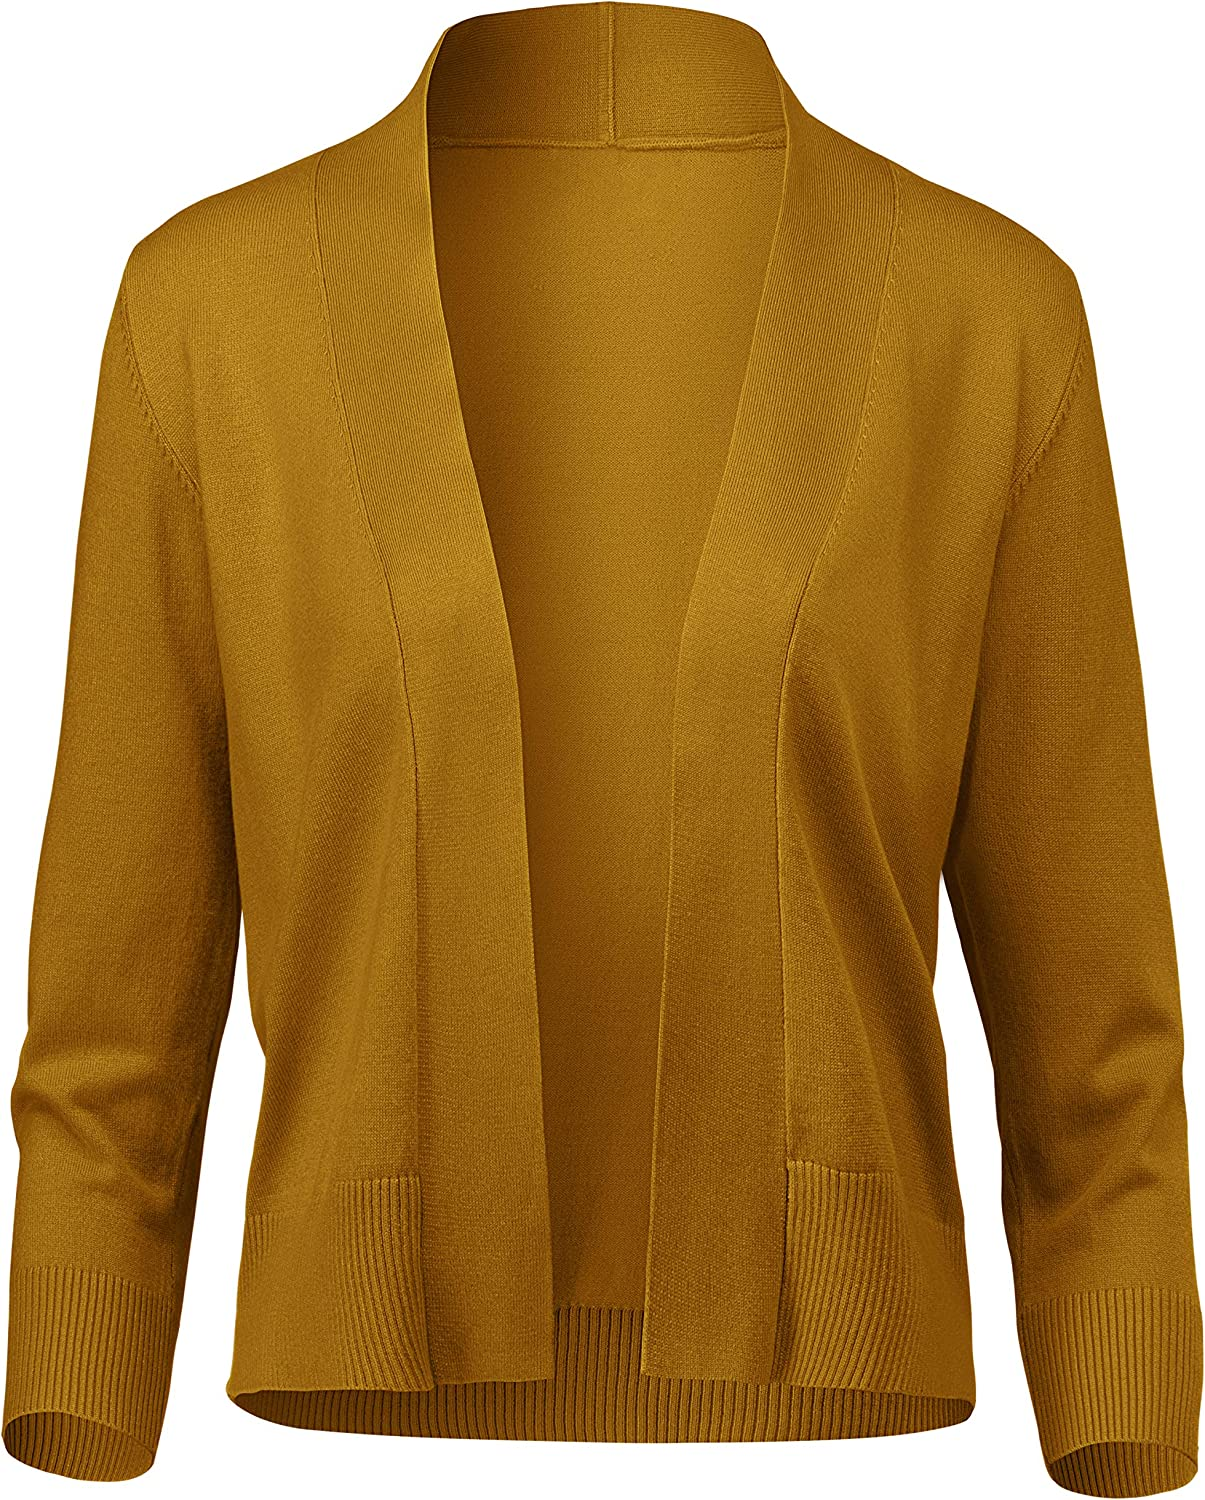 Women's Classic Max 45% OFF 3 4 Sleeve Max 84% OFF Open S Cropped Bolero Front Cardigan